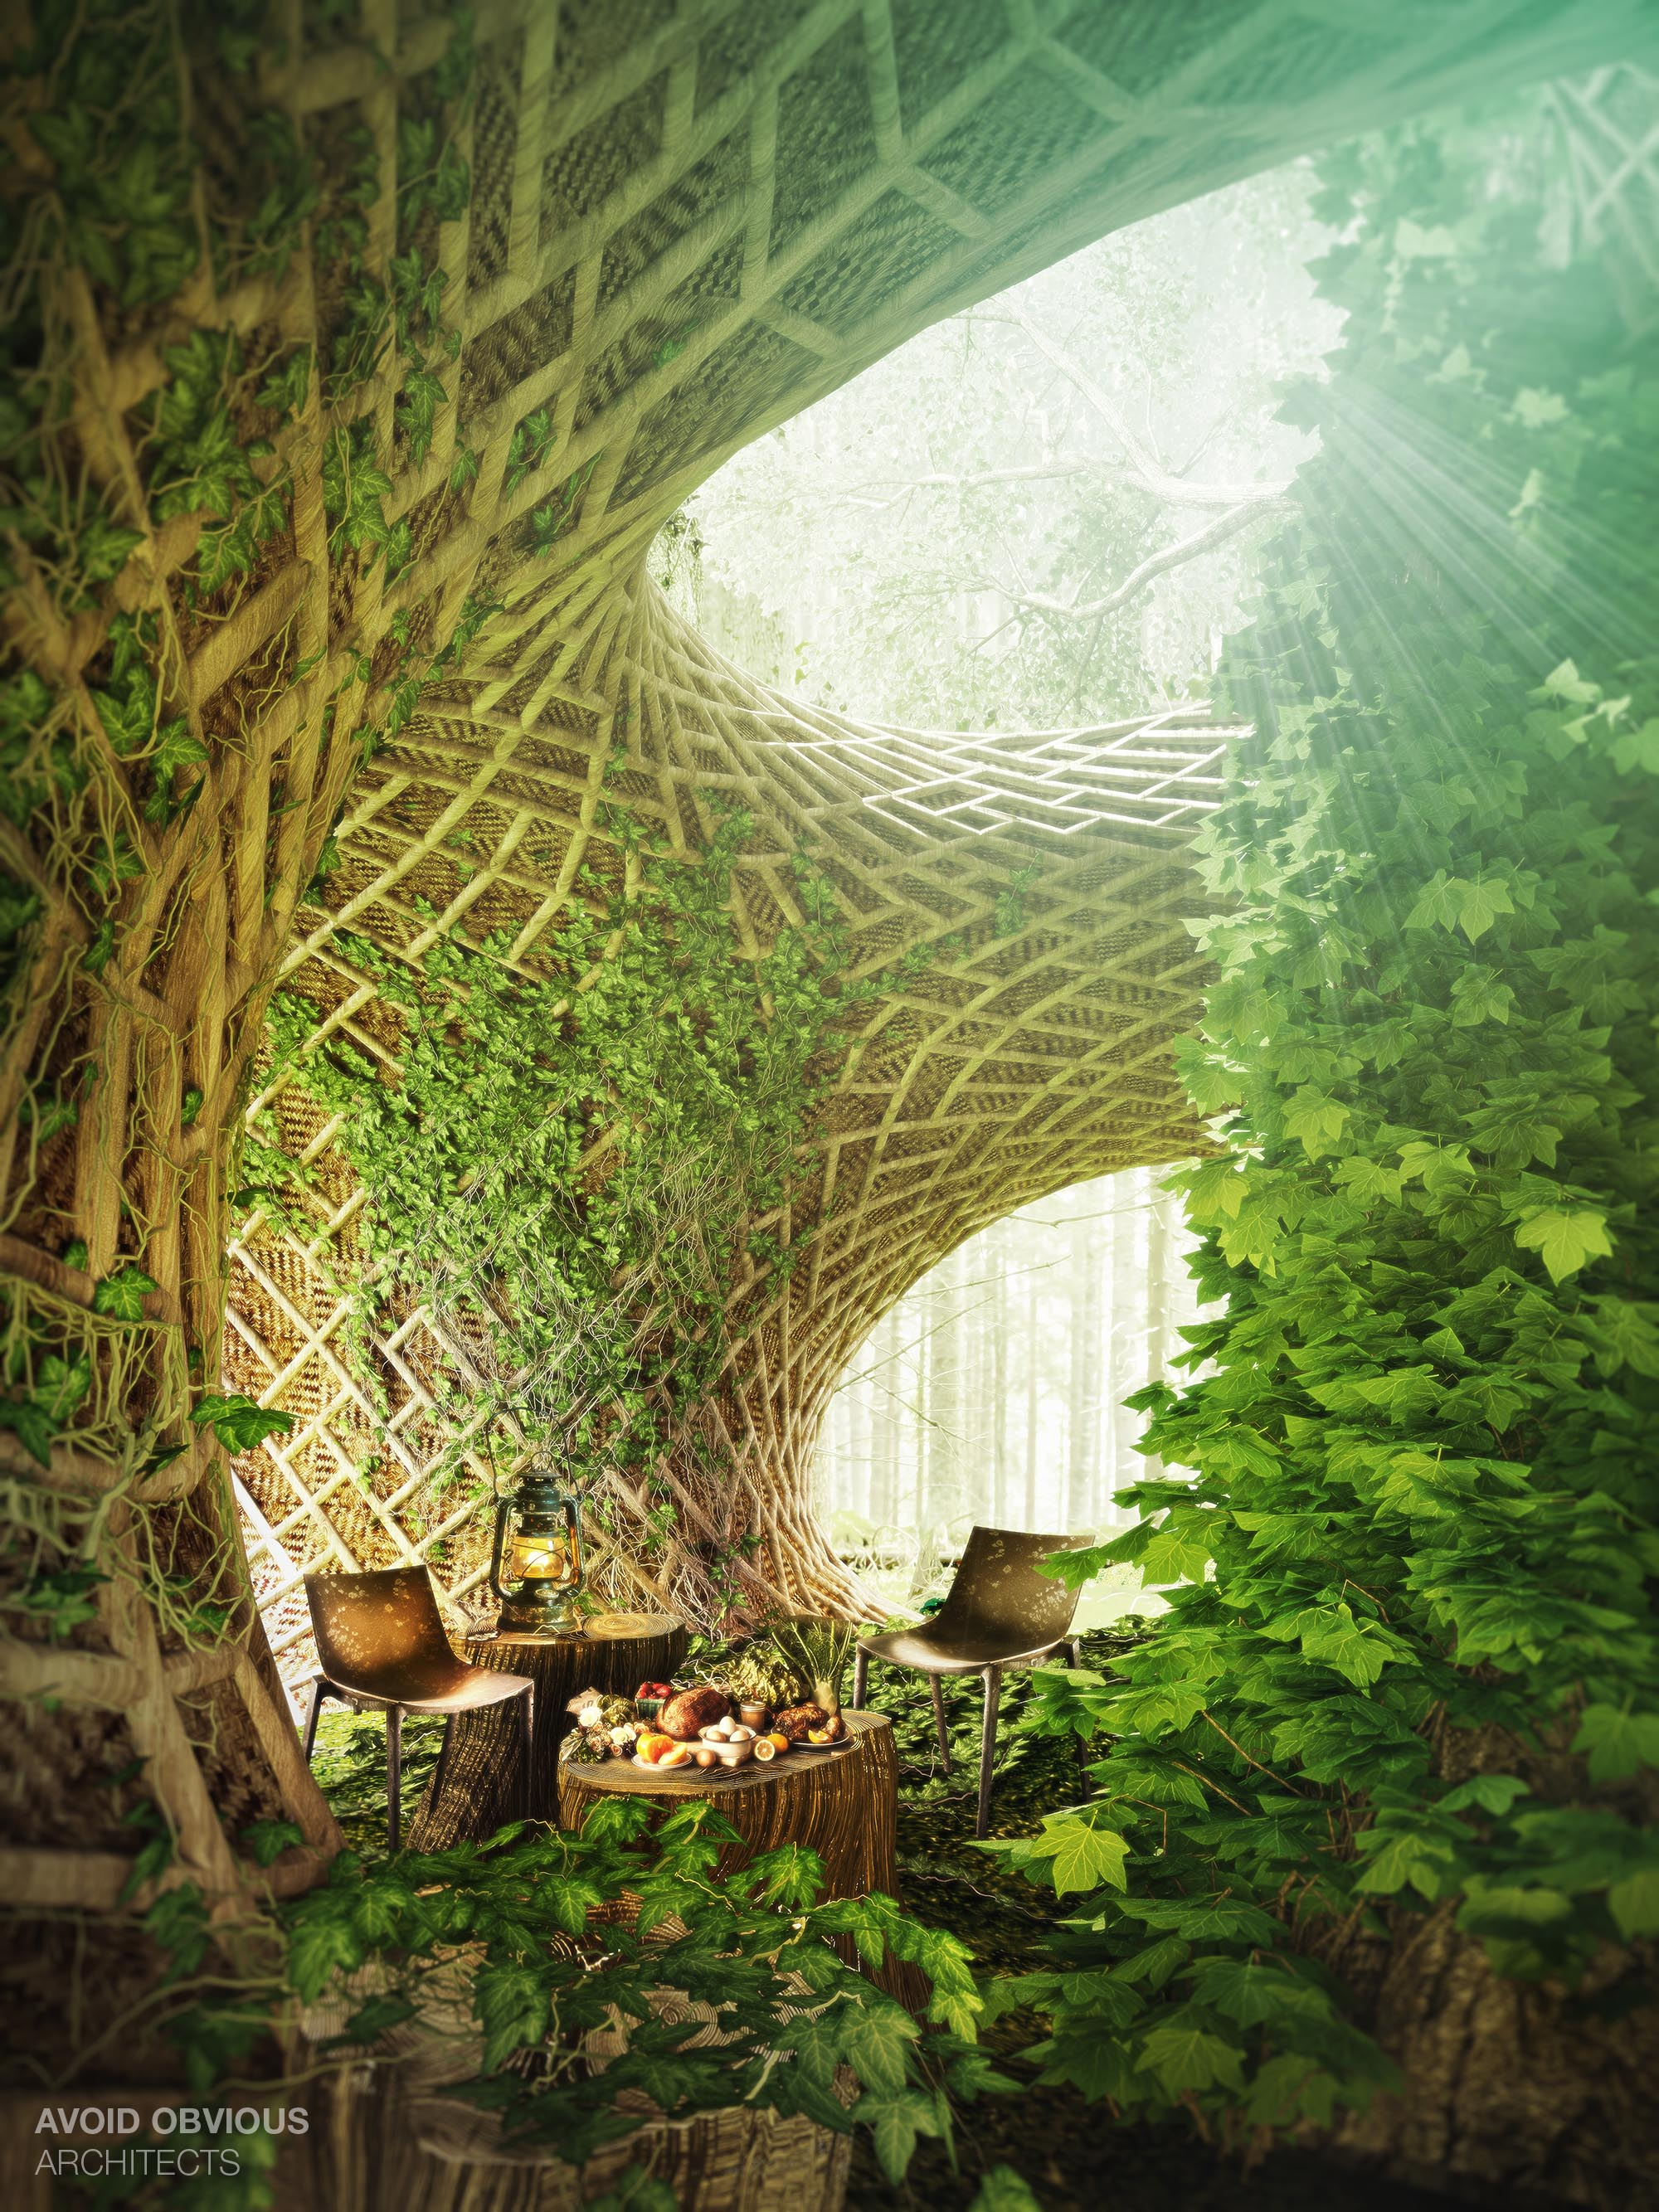 circle interior architecture nature living avoid future futuristic obvious sustainable ecological 3d plants center trees bamboo cycle architects wood learning